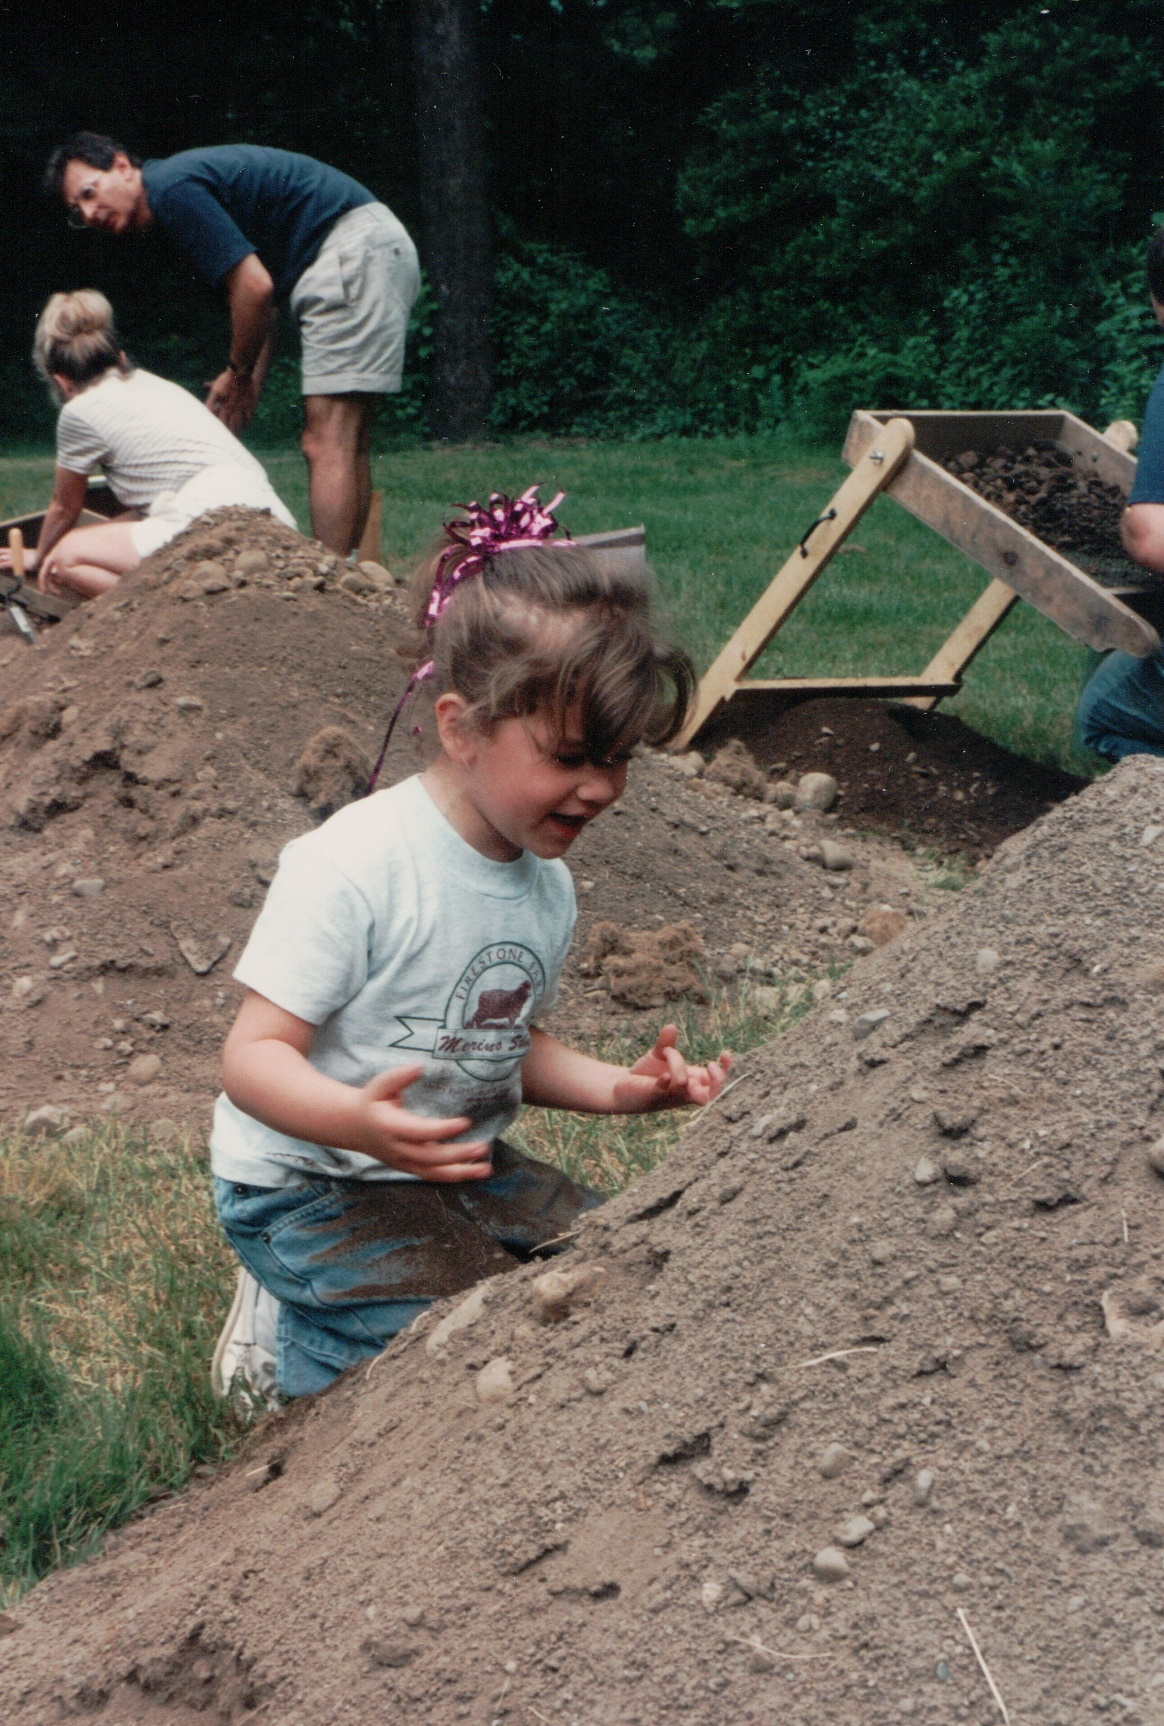 Color photo of a young girl at an archeological dig